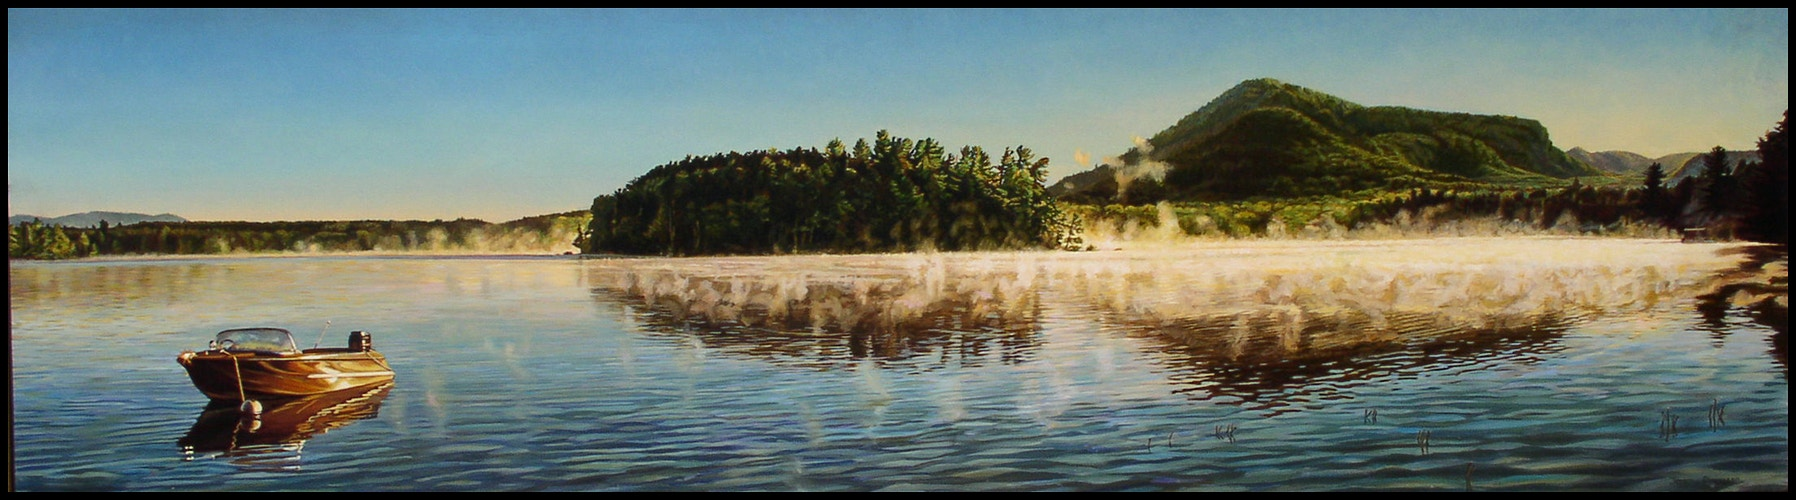 Silver Lake Morning - JoeRemillard